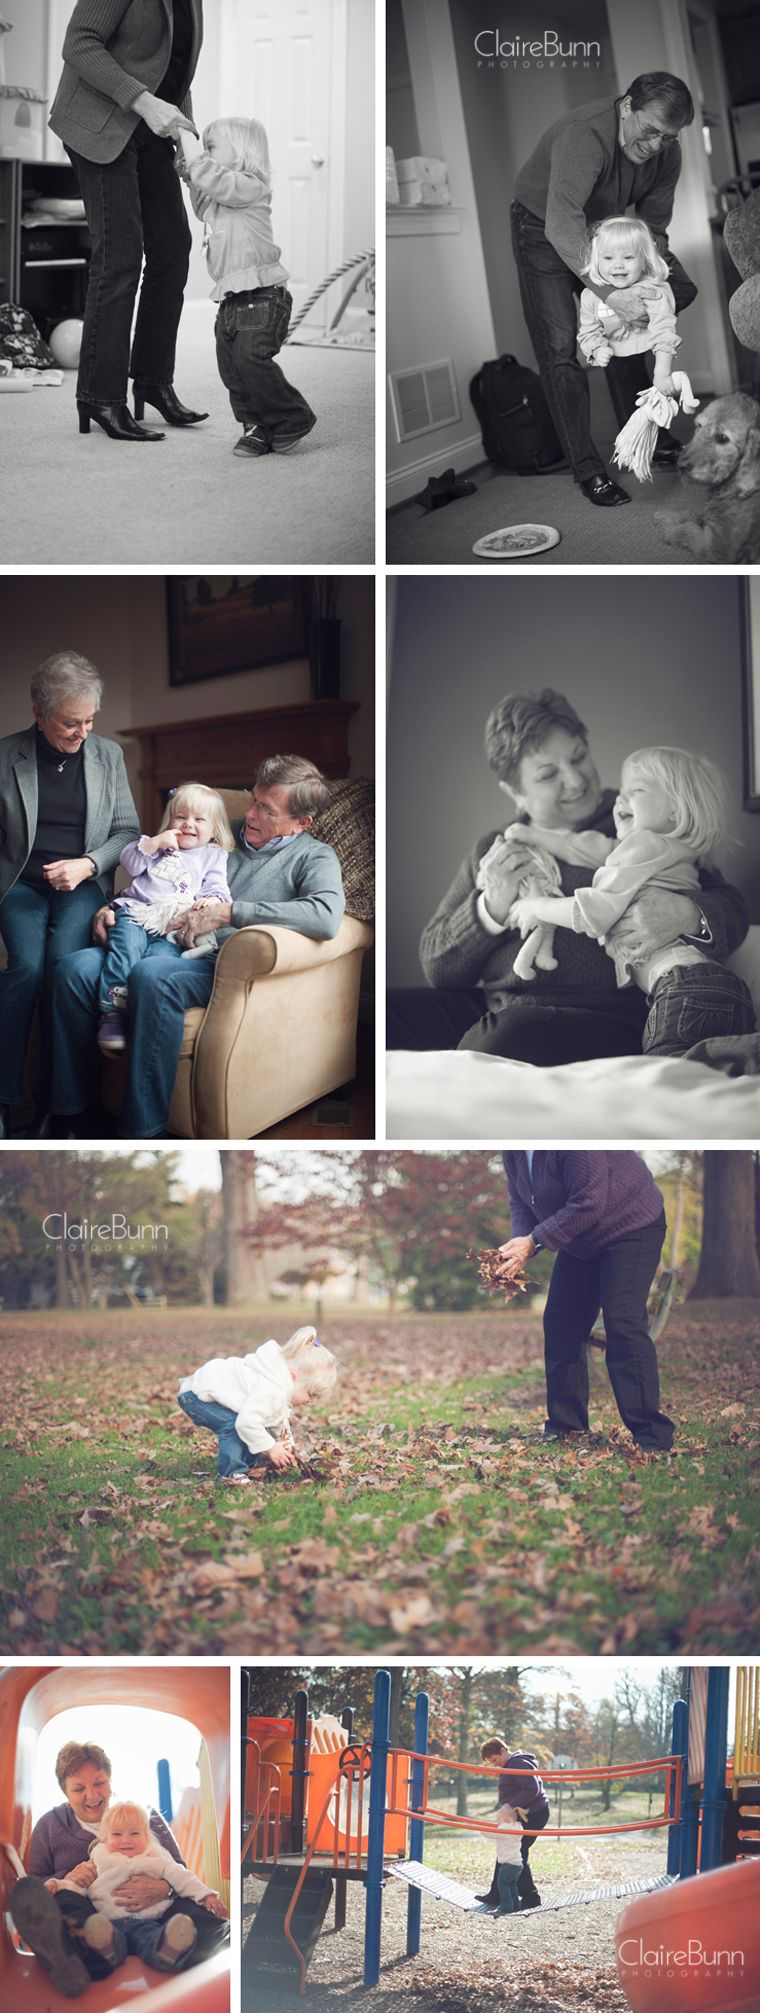 Grandparents and their granddaughter  Claire Bunn Photography  Lifestyle Photography. Can't wait to take professional pictures with our kids and their grandparents on both sides! #grandkidsphotography